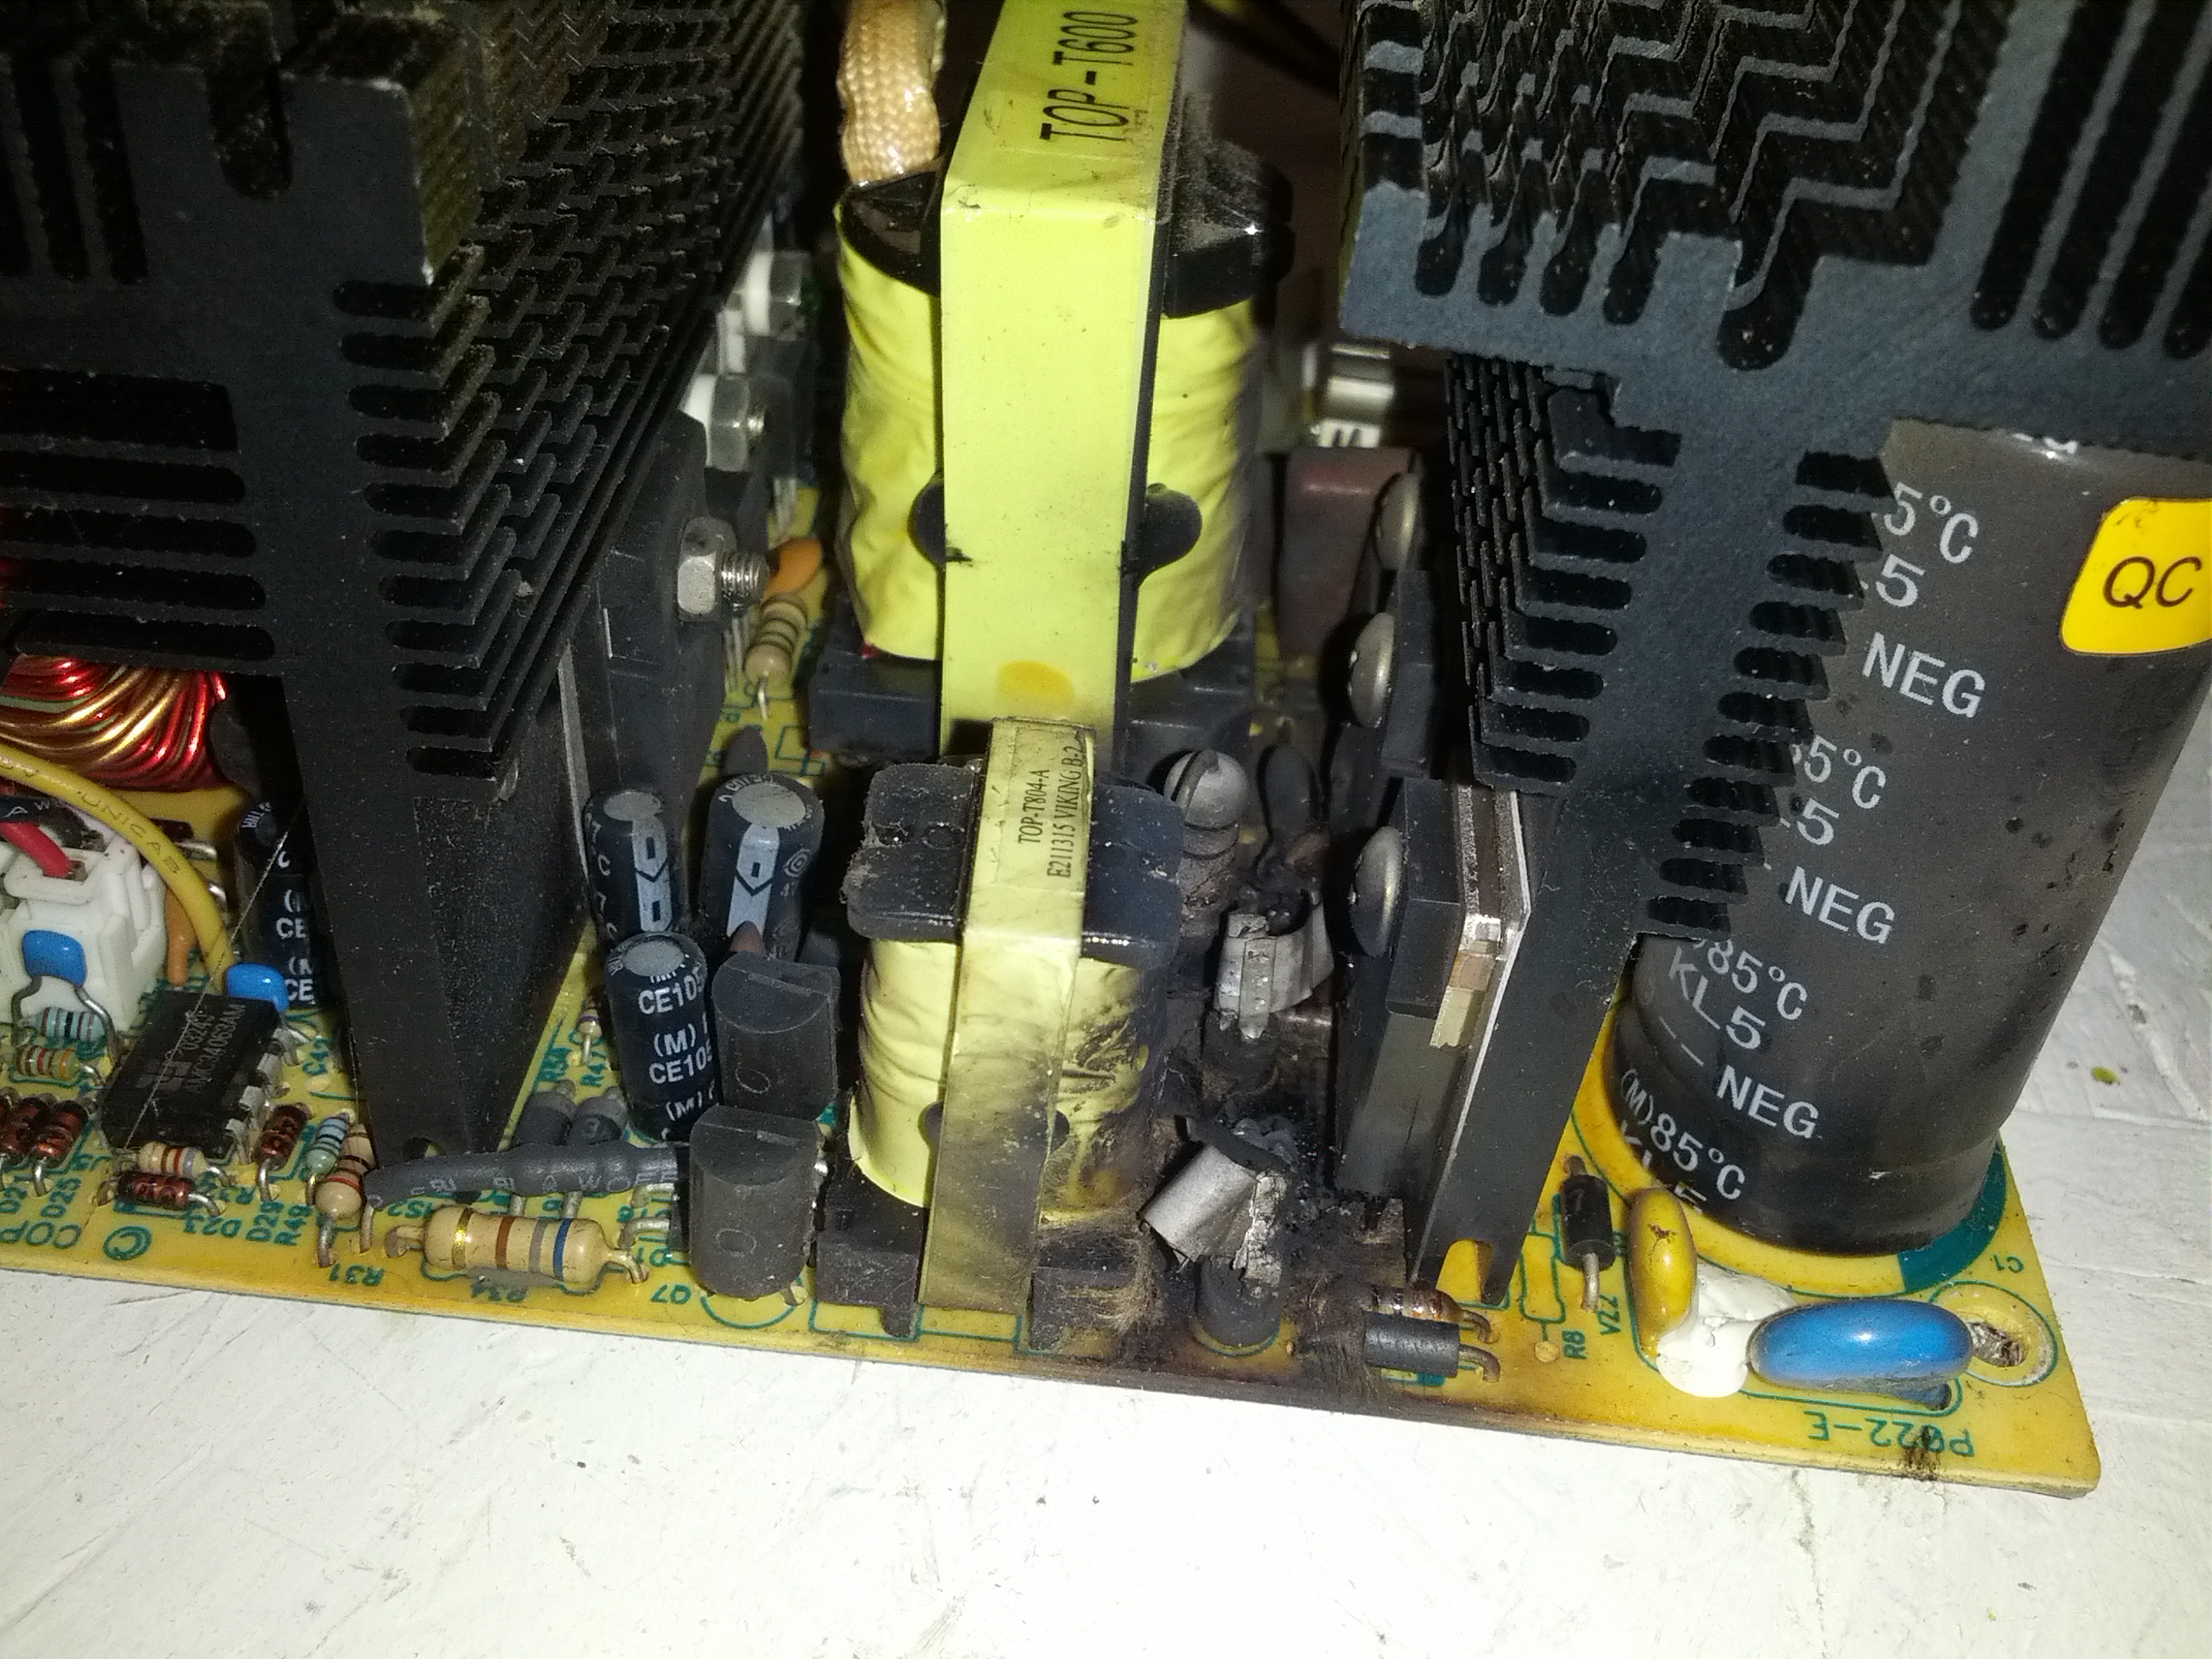 power supply failure What is the power supply failure rate or how many failure have you experienced so far  if the failure rate is low, how safe is it to use only one psu per server and keep the redundant one as backup if the first one fails.